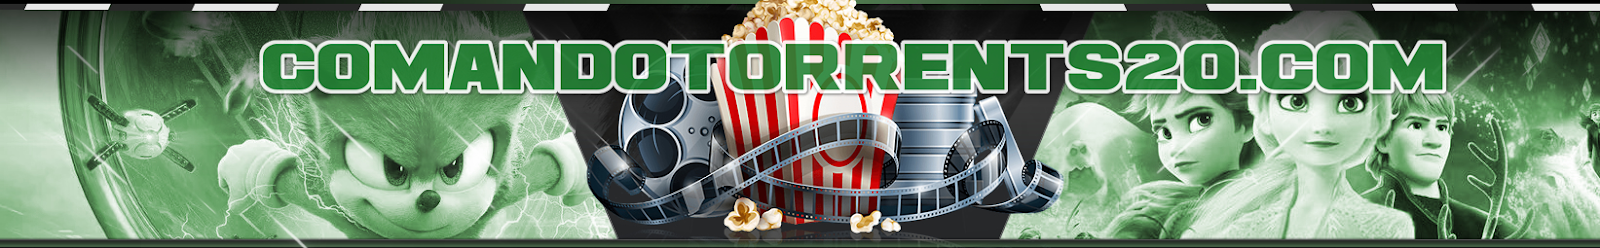 Comando Torrents | Comando Torrent | Filmes Torrent